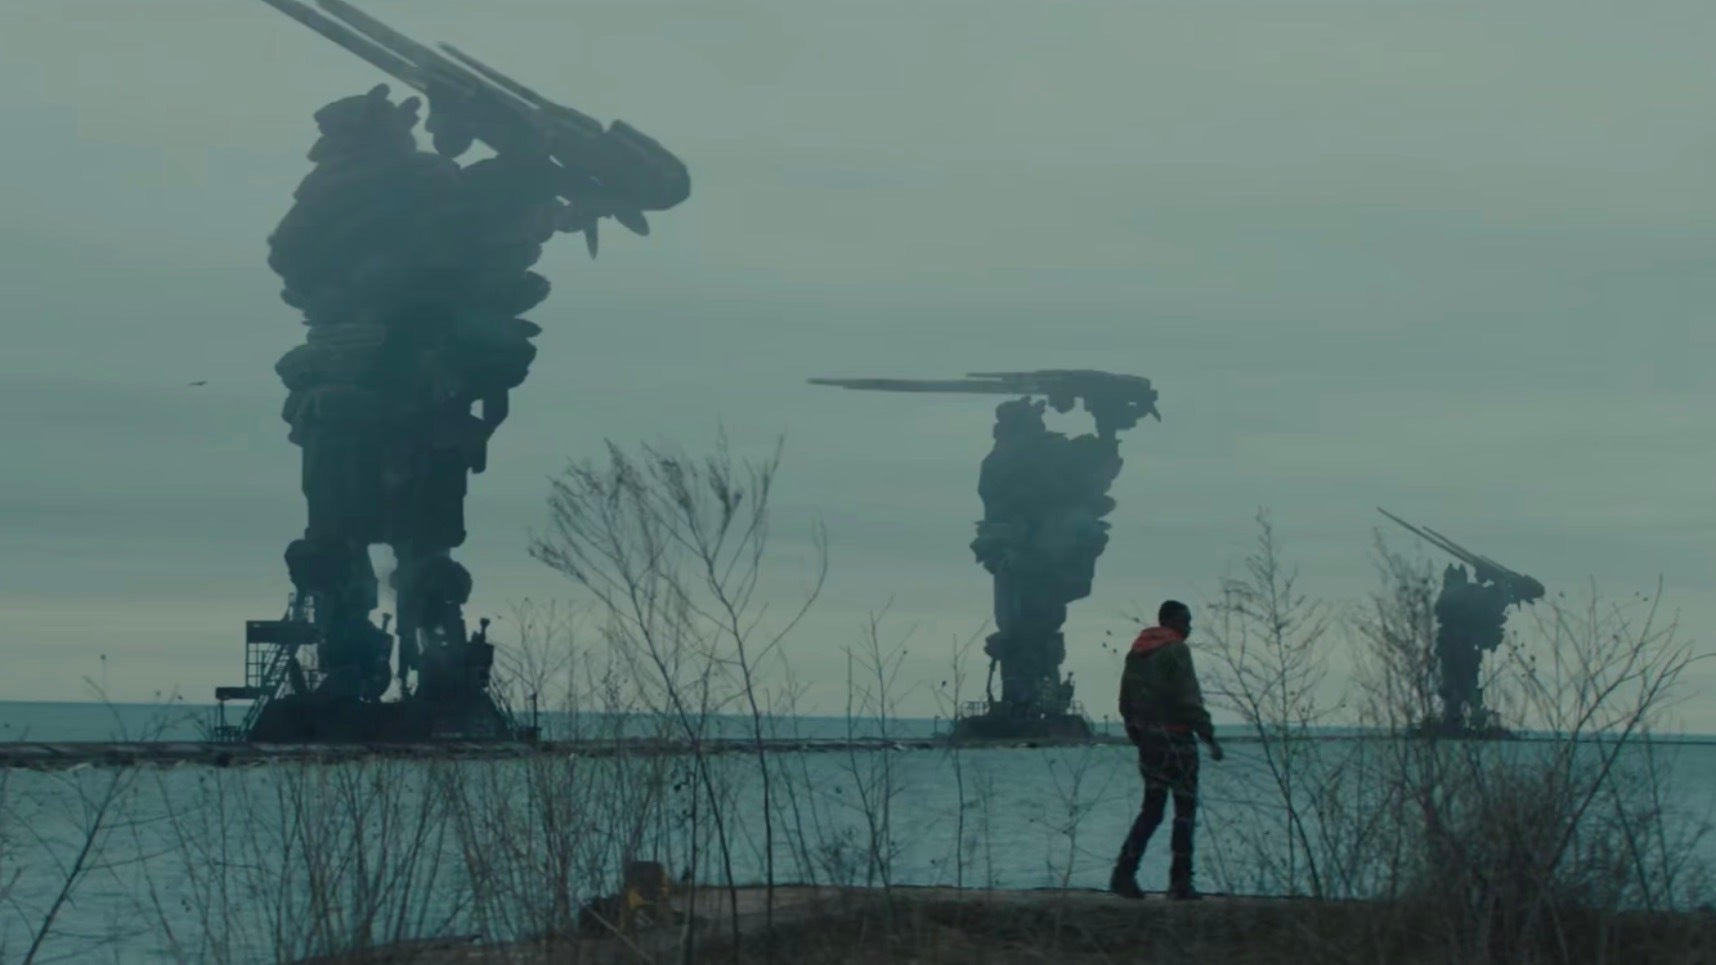 The New Trailer For The Alien Occupation Thriller Captive State Just Might Blow You Away